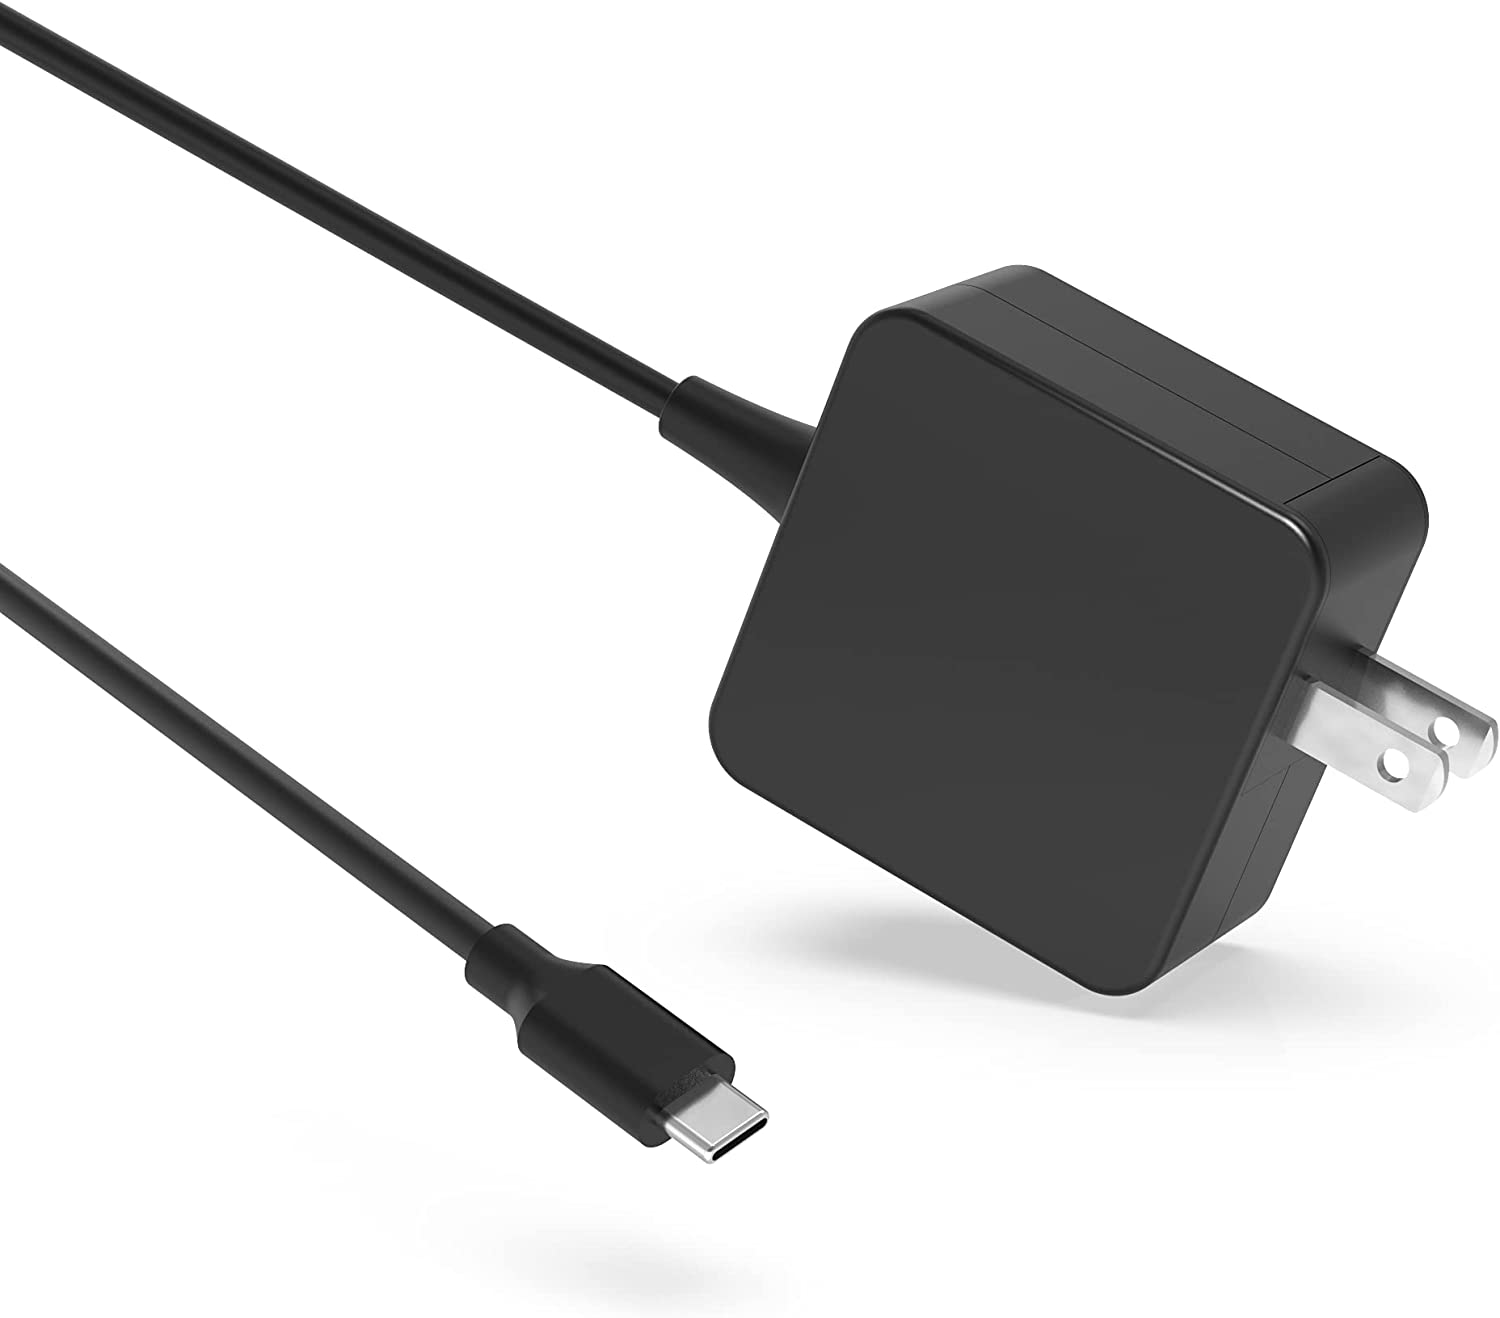 45W AC Adapter Charger Fit Large discharge sale for c330 Lenovo Chromebook Discount is also underway 100e 300e